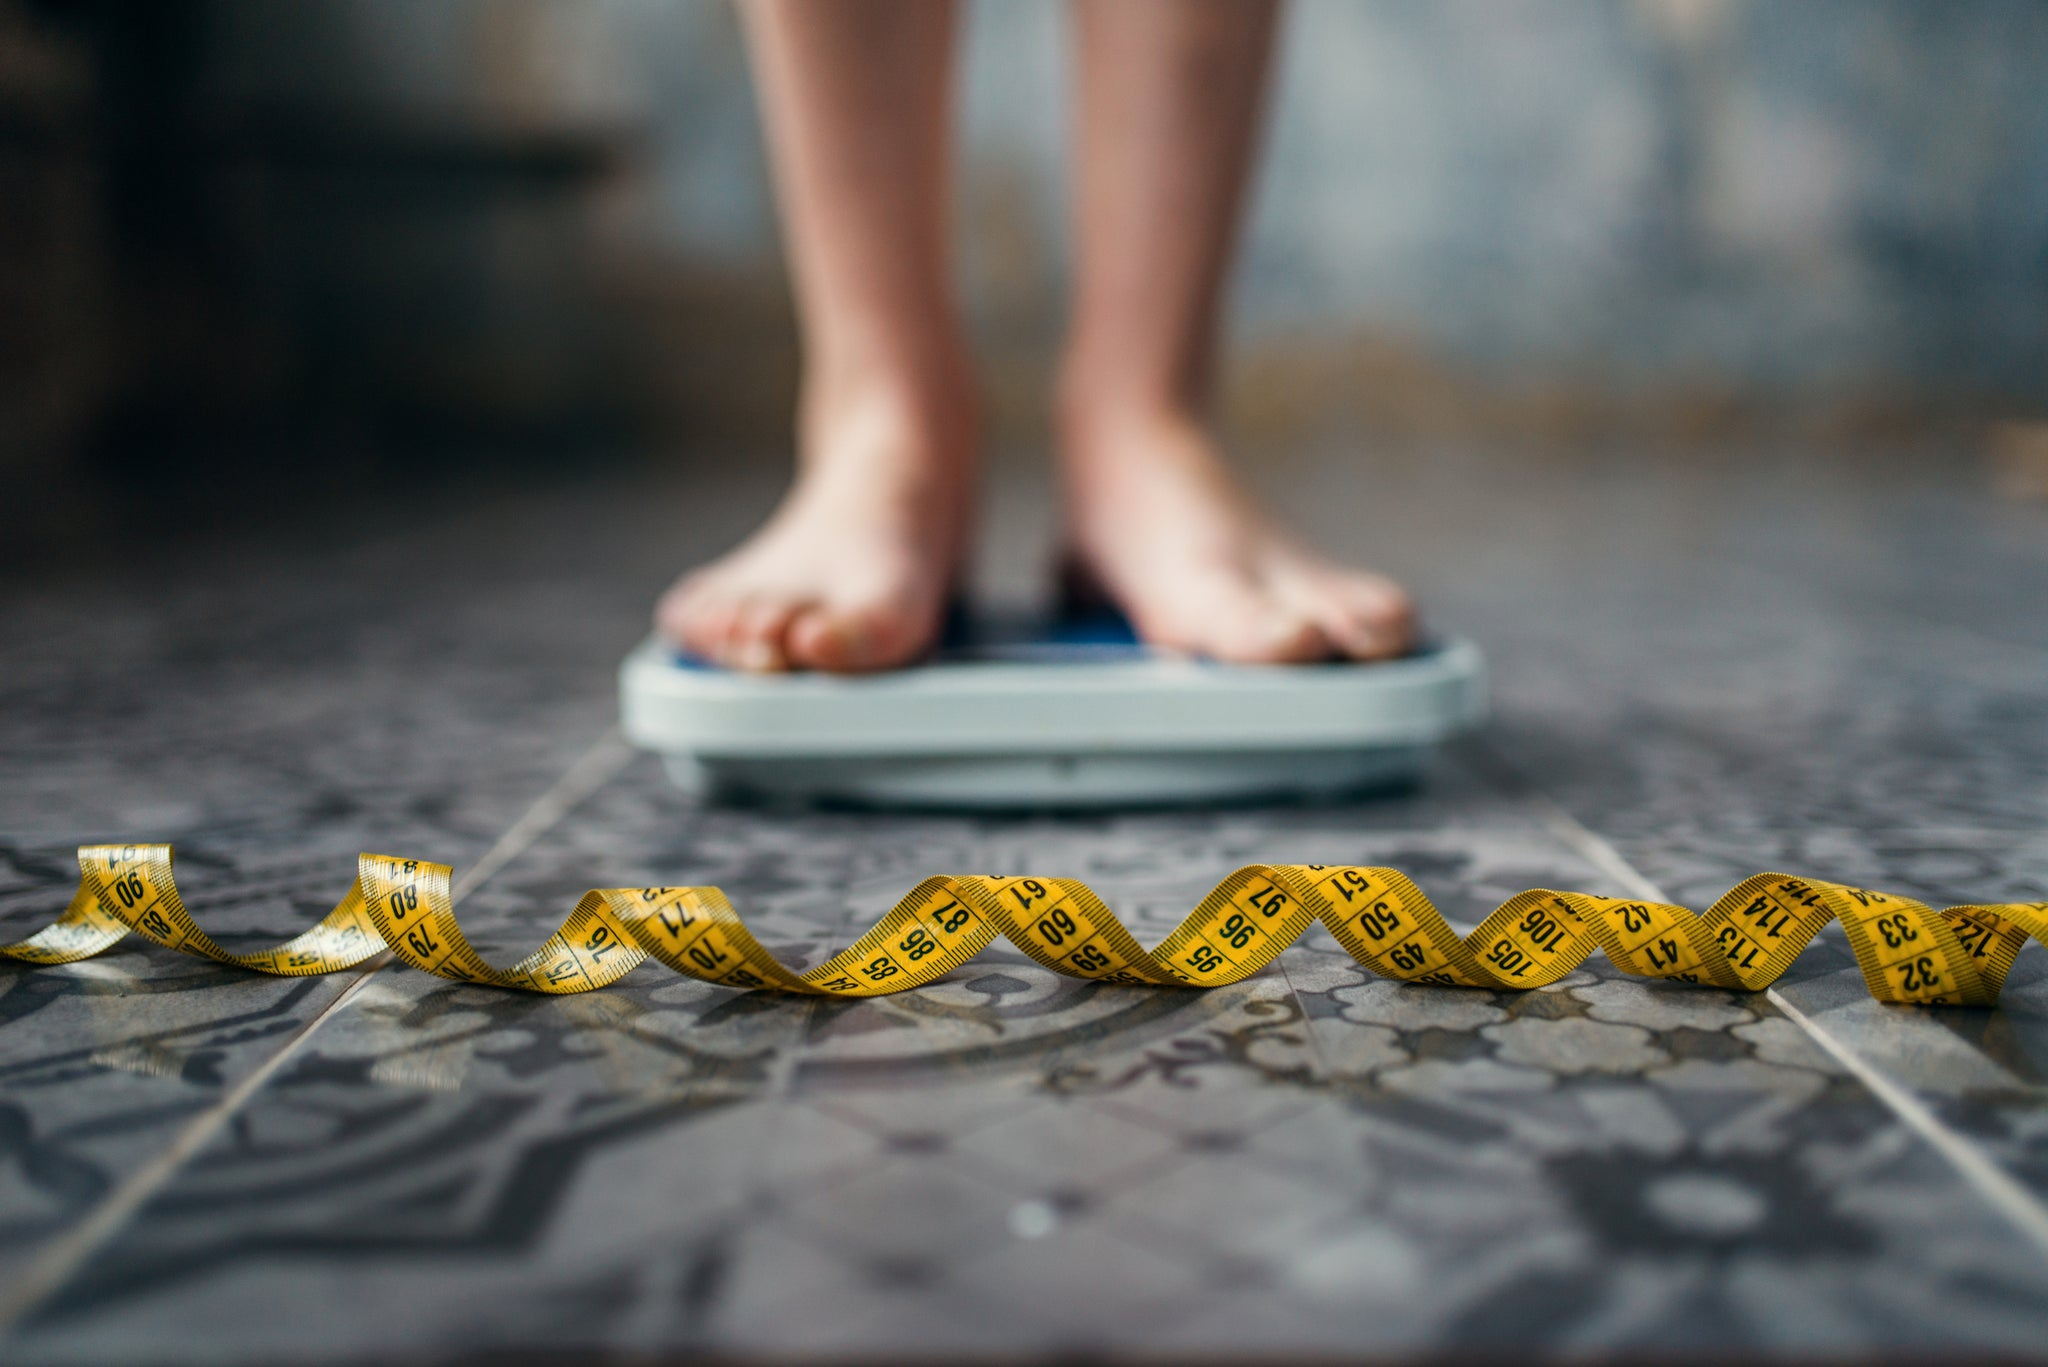 Importance of Non-Scale Victories After Weight Loss Surgery